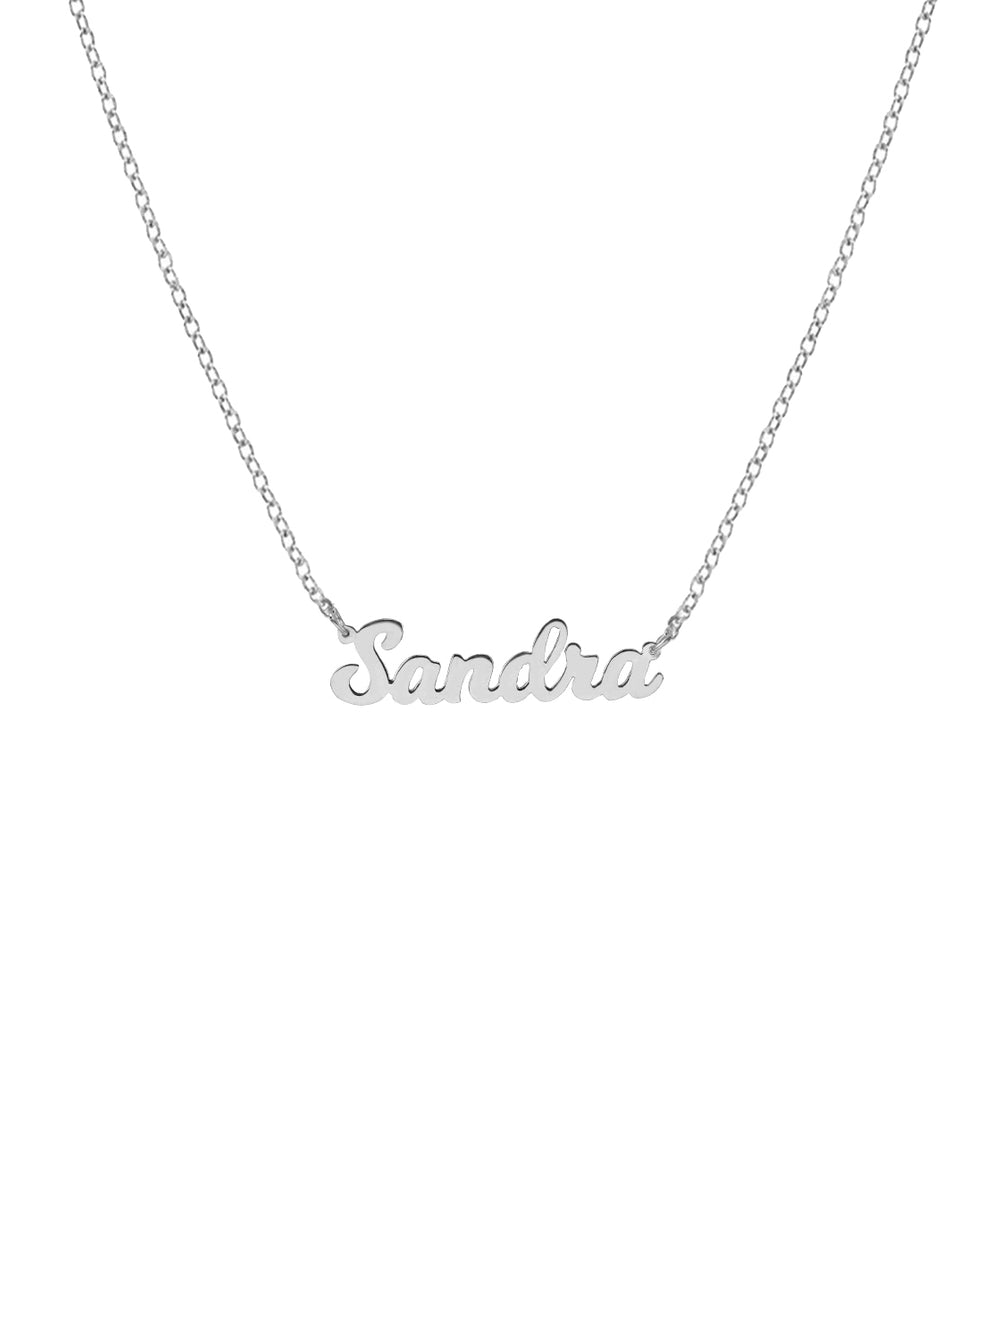 THE CHAPTER II NAMEPLATE NECKLACE (CHAPTER II BY GREG YÜNA X THE M JEWELERS)